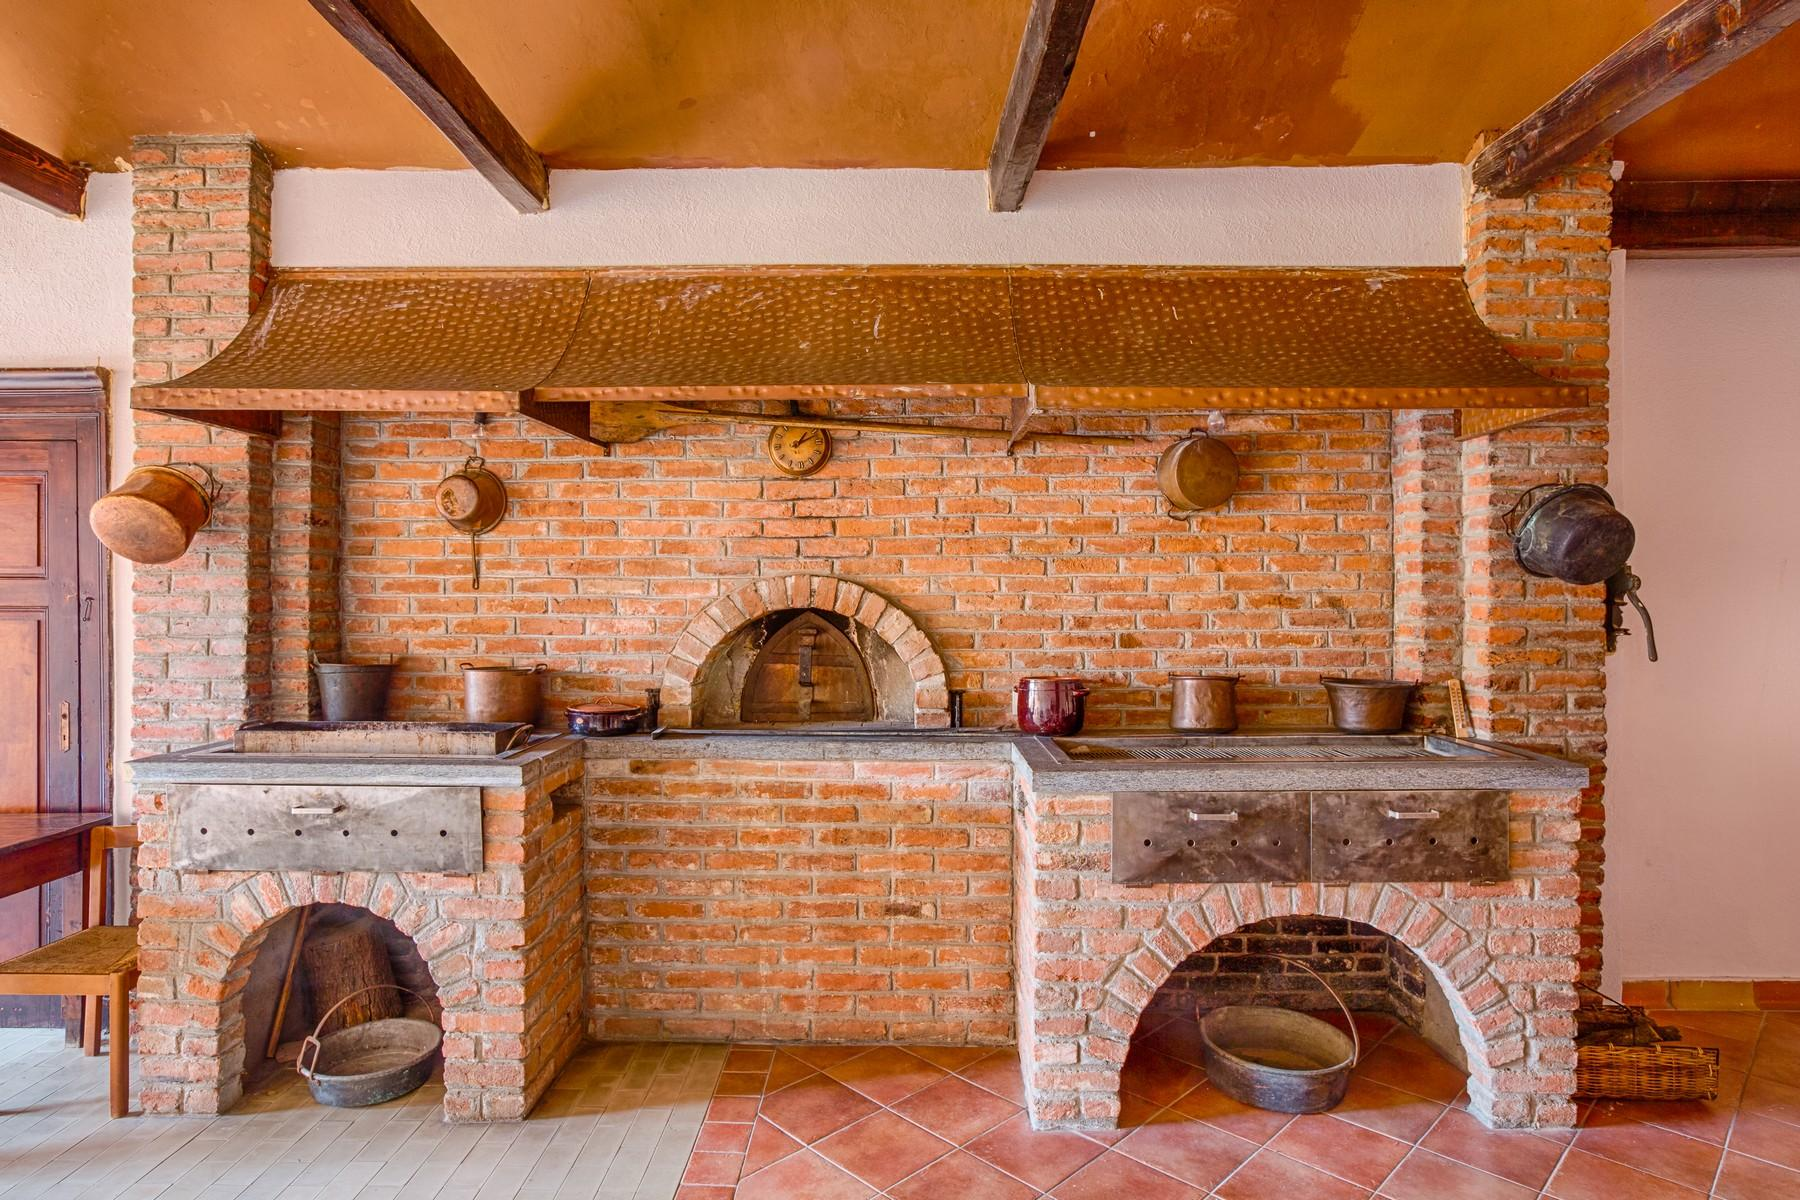 Incomparable farmhouse in the heart of the Monferrato region - 6